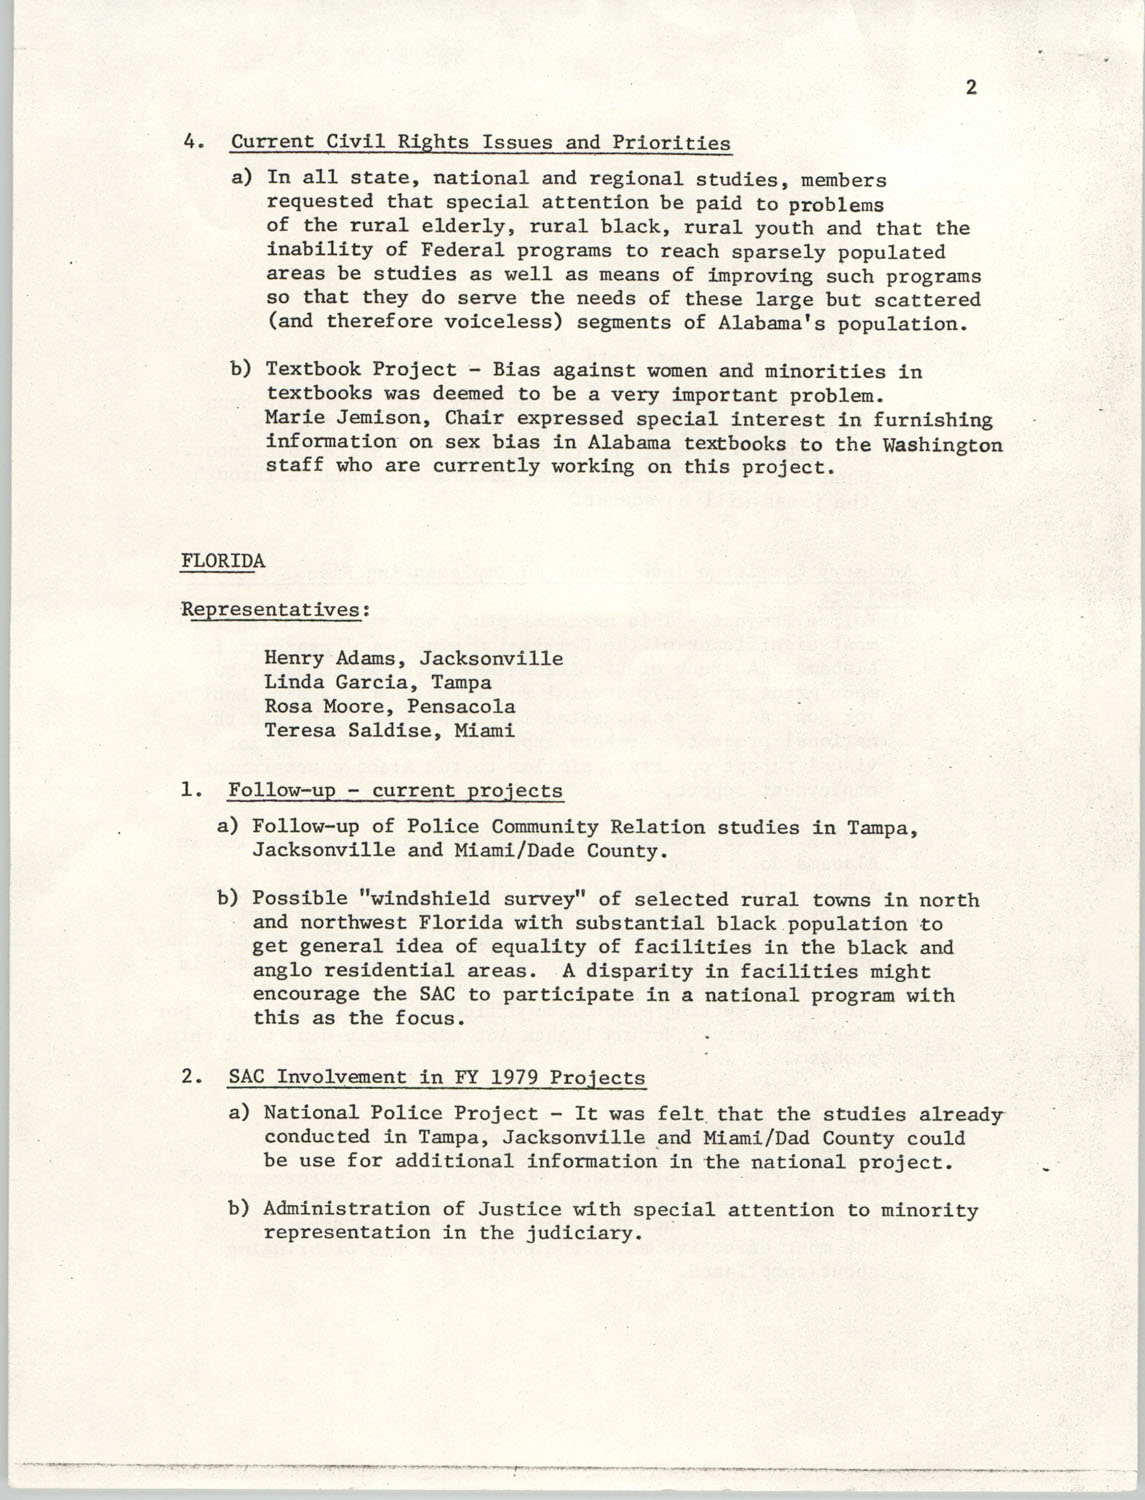 Minutes, SAC Southern Region Meeting, Page 2